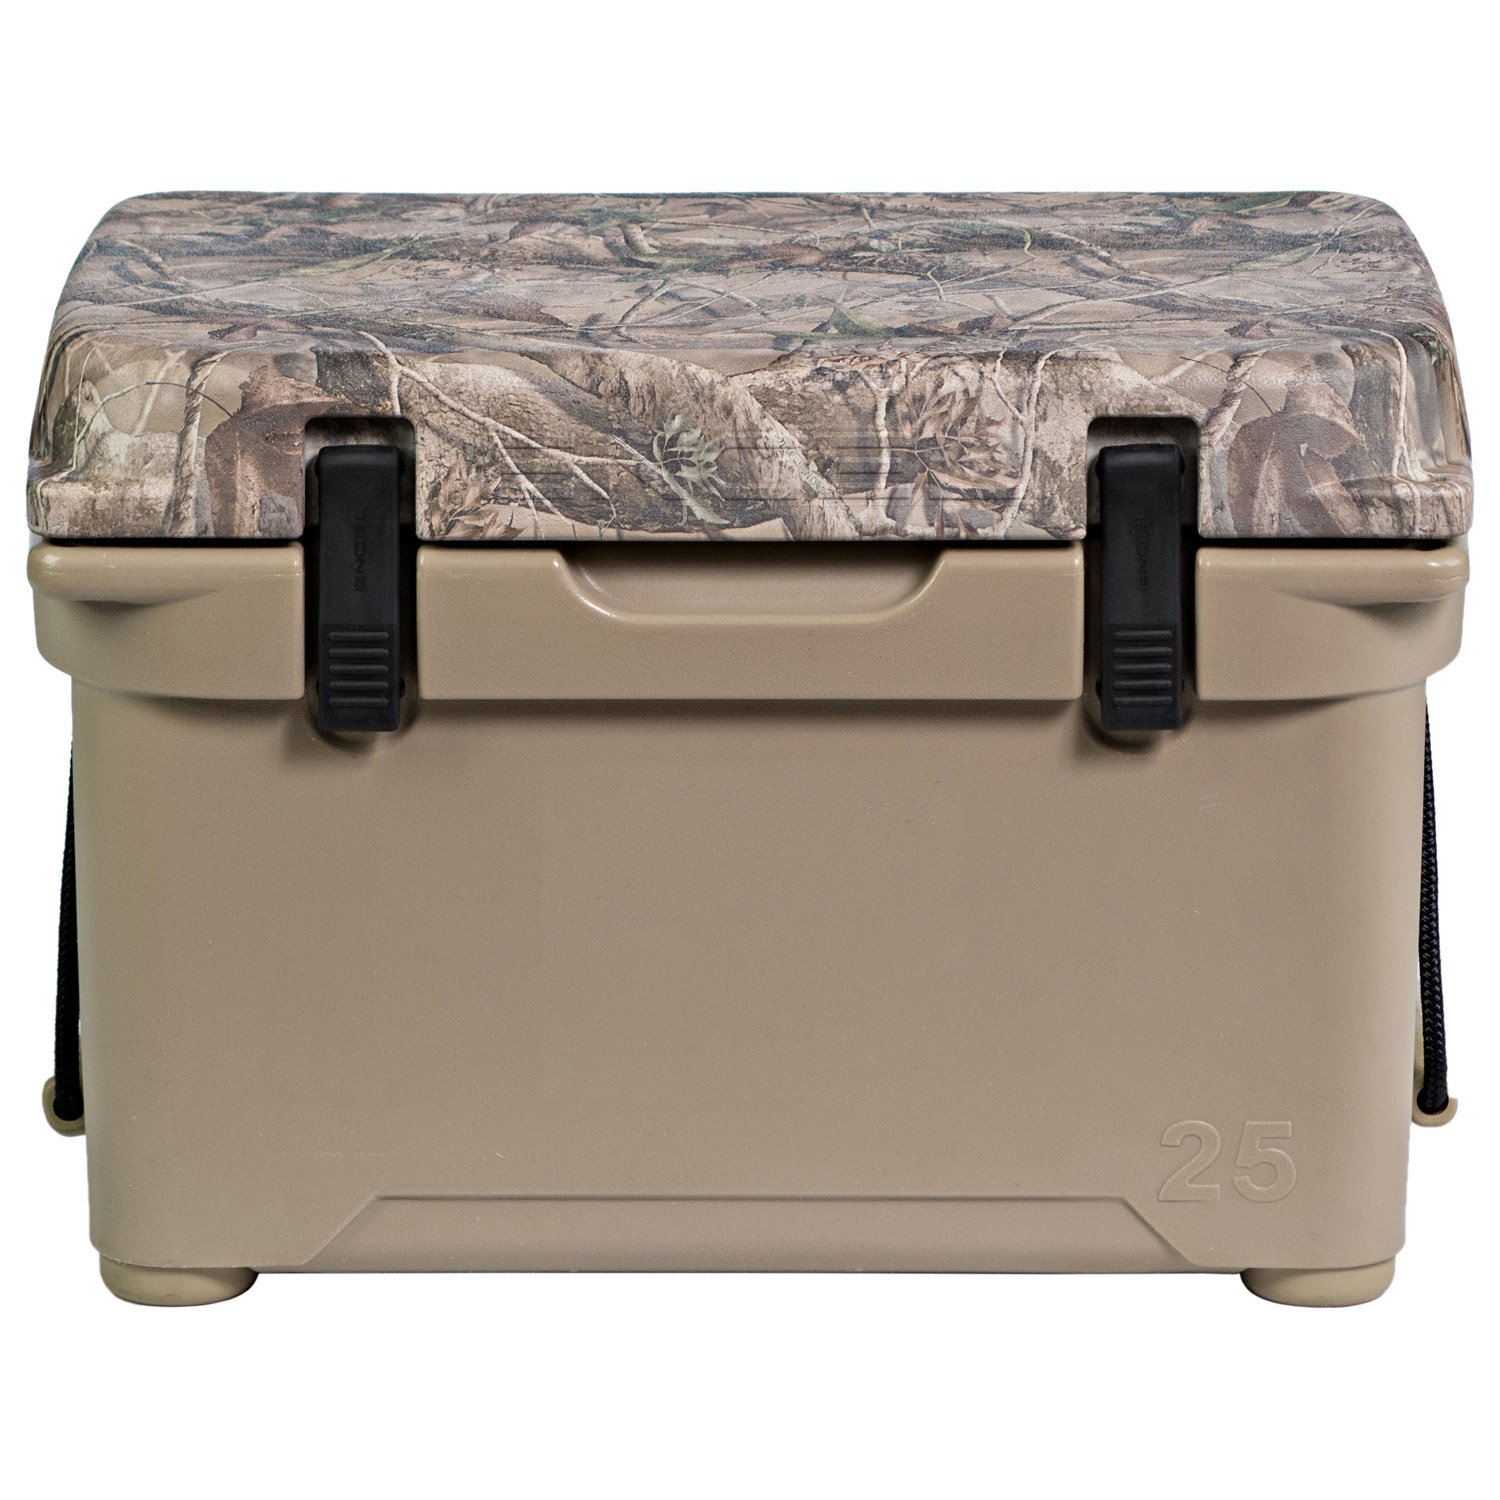 Engel 25 DeepBlue Roto-Molded High-Performance Cooler in Tan with Camo Lid